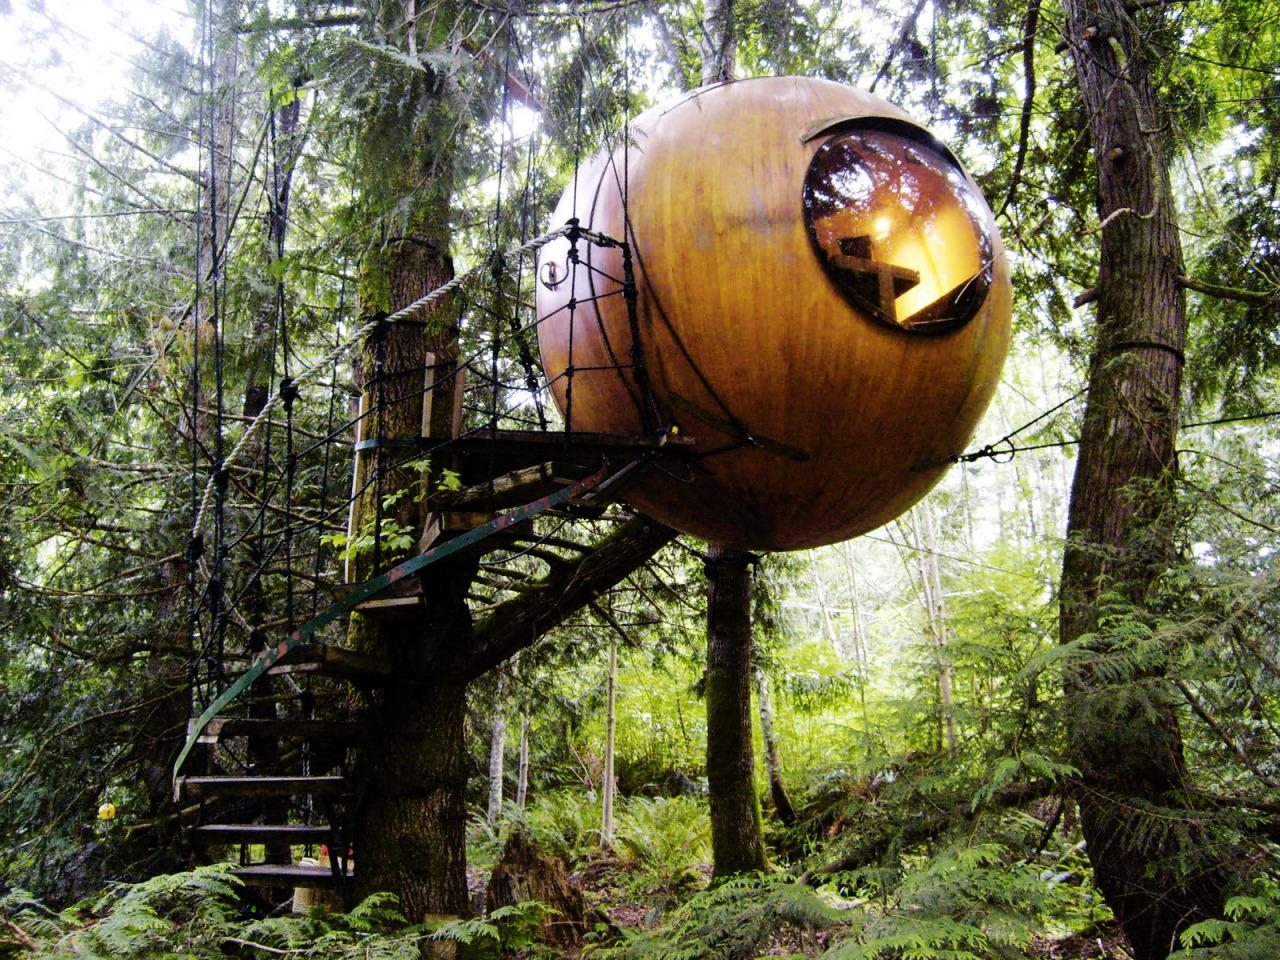 """<p>Dangling from dense conifers on British Columbia's Vancouver Island, these <a href=""""http://freespiritspheres.com"""">floating orbs</a>are made with the concept of """"oneness"""" in mind—the floor, walls, and ceiling create one continuous space, unlike your typical building. Taking cues from sailboat rigging, the spheres use trees as their suspension points and are tethered by three vertical ropes tied to tree branches. Guests can test out the spruce-and-yellow-cedar paneled rooms for $110 a night, or purchase a kit for building one in their own backyard. </p>"""